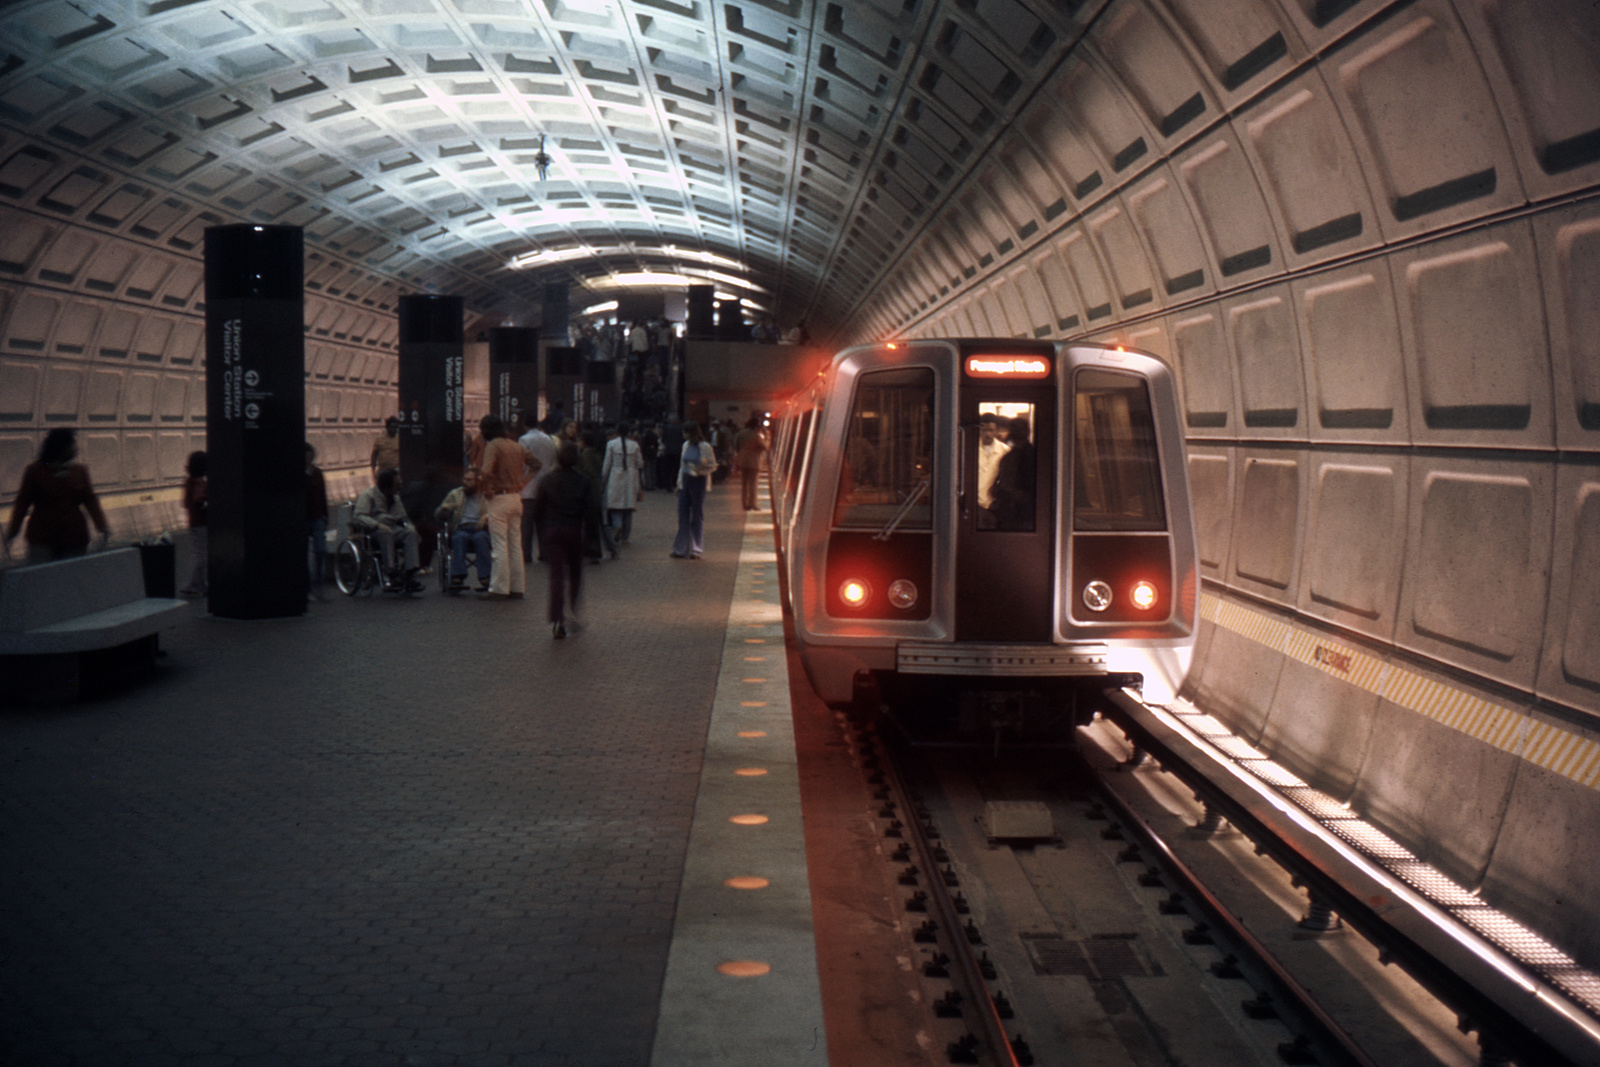 (346k, 1044x708)<br><b>Country:</b> United States<br><b>City:</b> Washington, D.C.<br><b>System:</b> Washington Metro (WMATA)<br><b>Line:</b> WMATA Red Line<br><b>Location:</b> Union Station <br><b>Collection of:</b> David Pirmann<br><b>Date:</b> 4/1976<br><b>Viewed (this week/total):</b> 1 / 7898